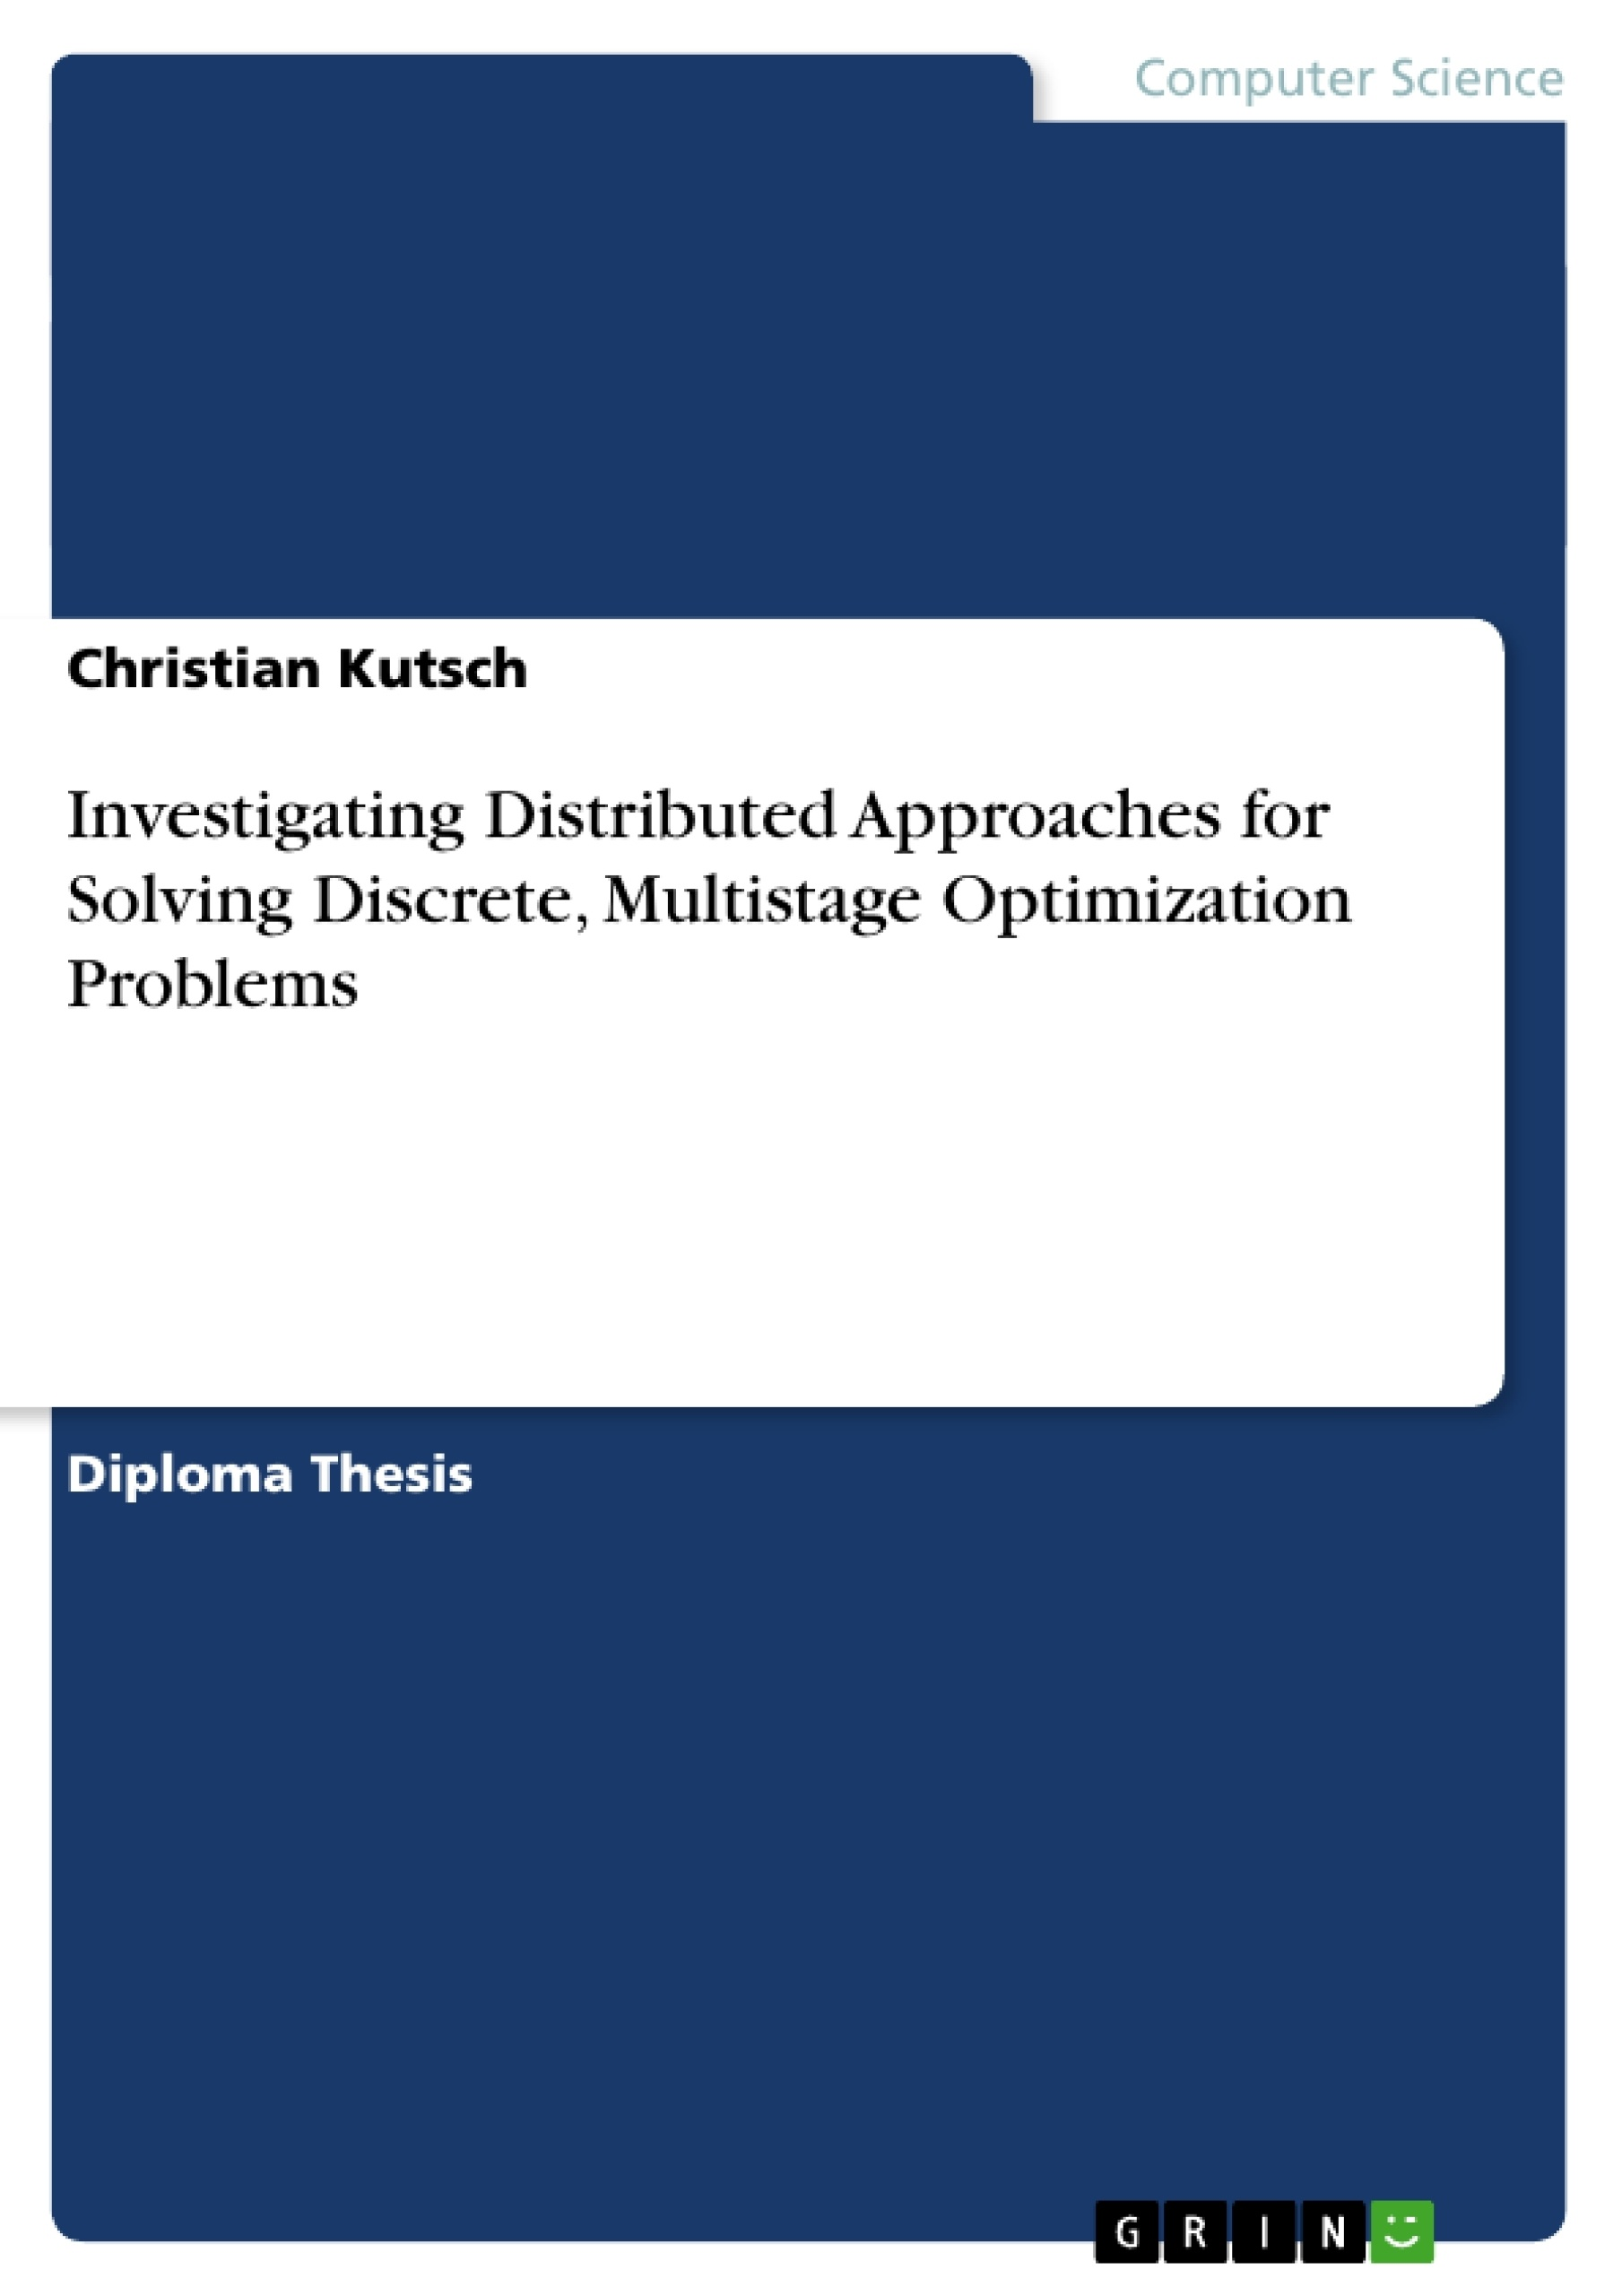 Title: Investigating Distributed Approaches for Solving Discrete, Multistage Optimization Problems